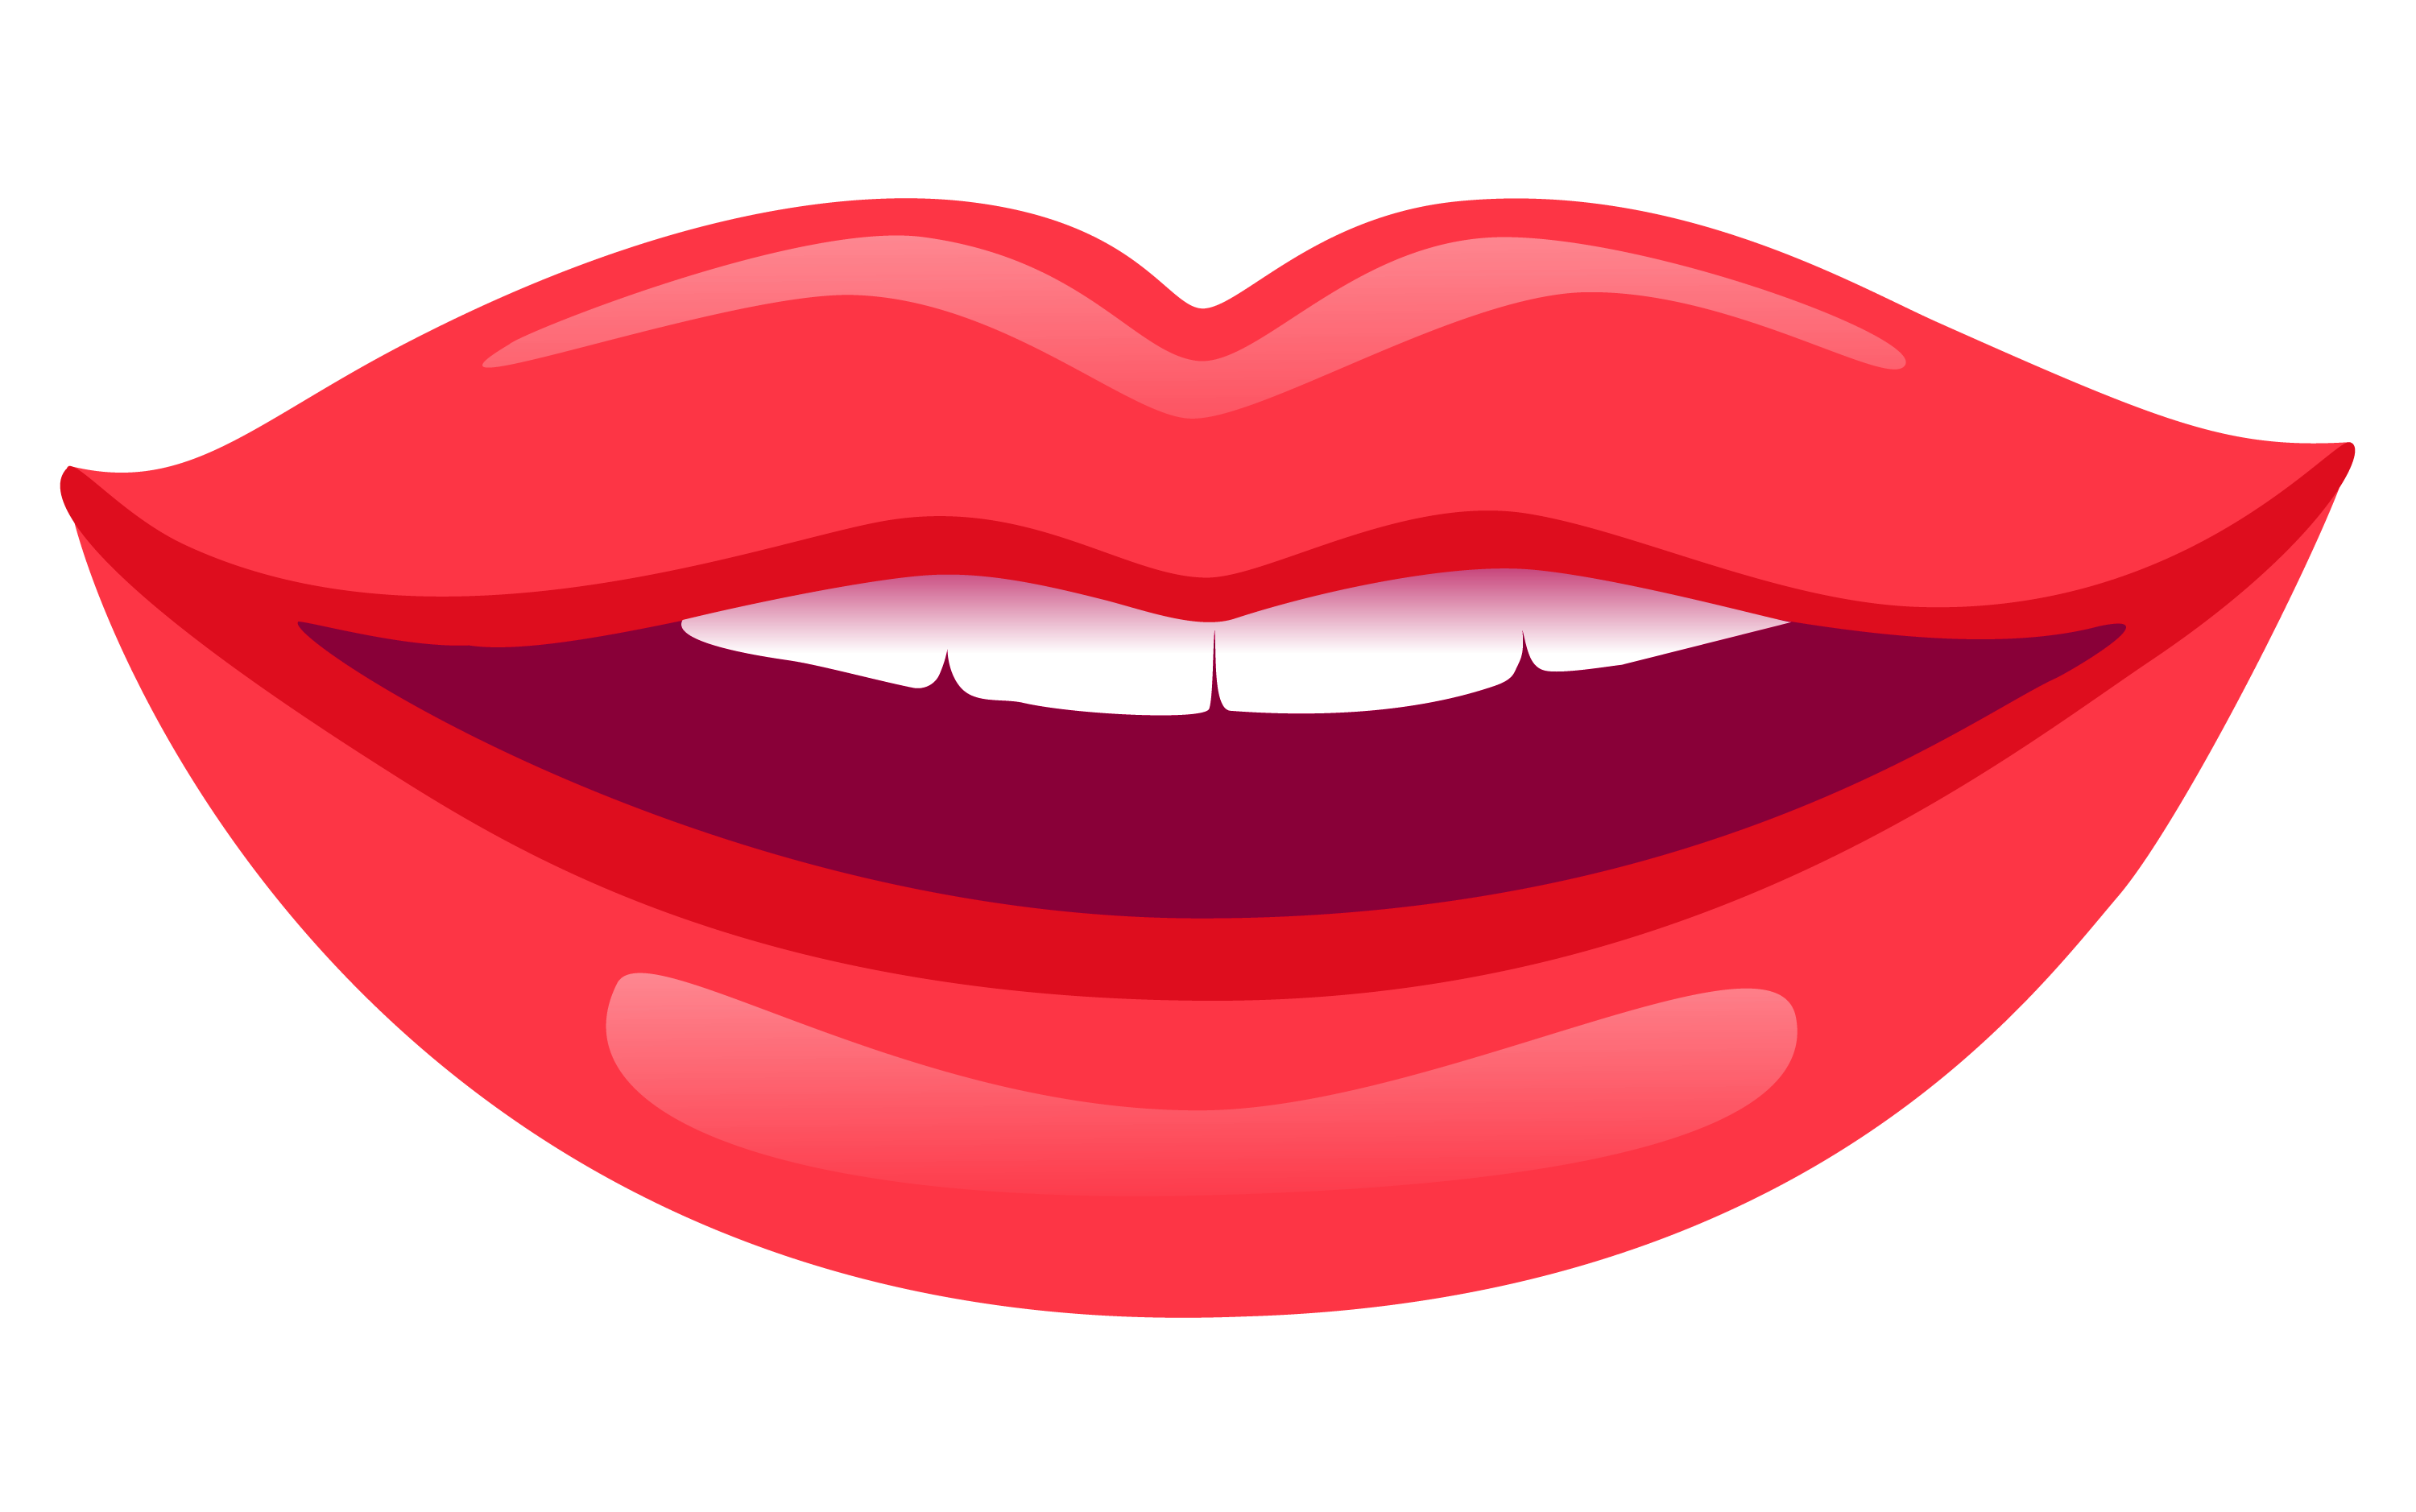 PlusPNG - Lips PNG